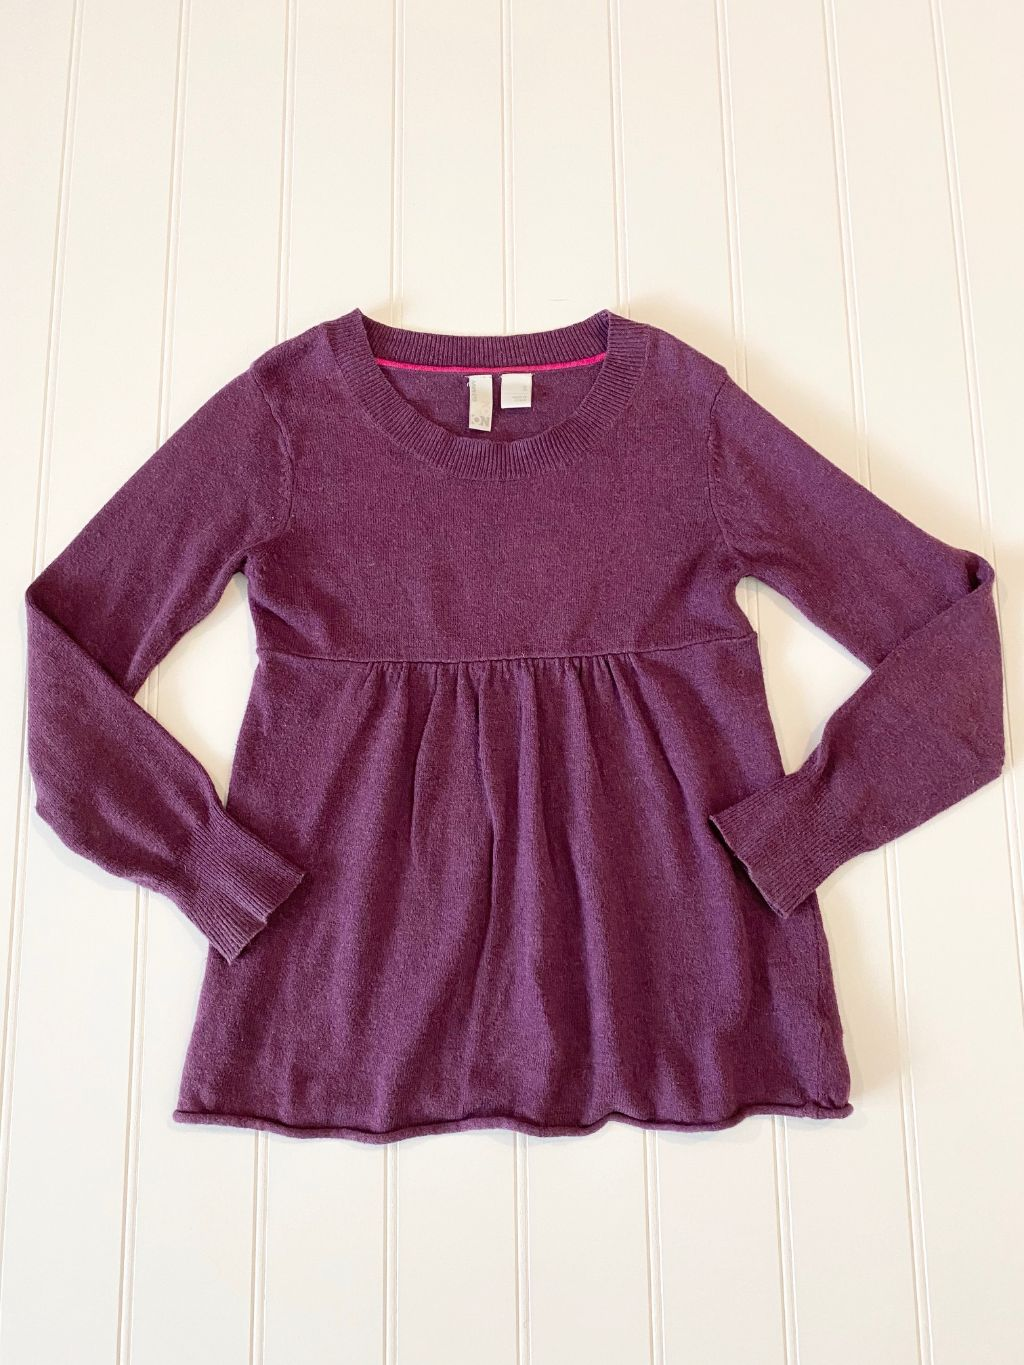 Pre-Loved Girls Old Navy Sweater Size S (5/6)